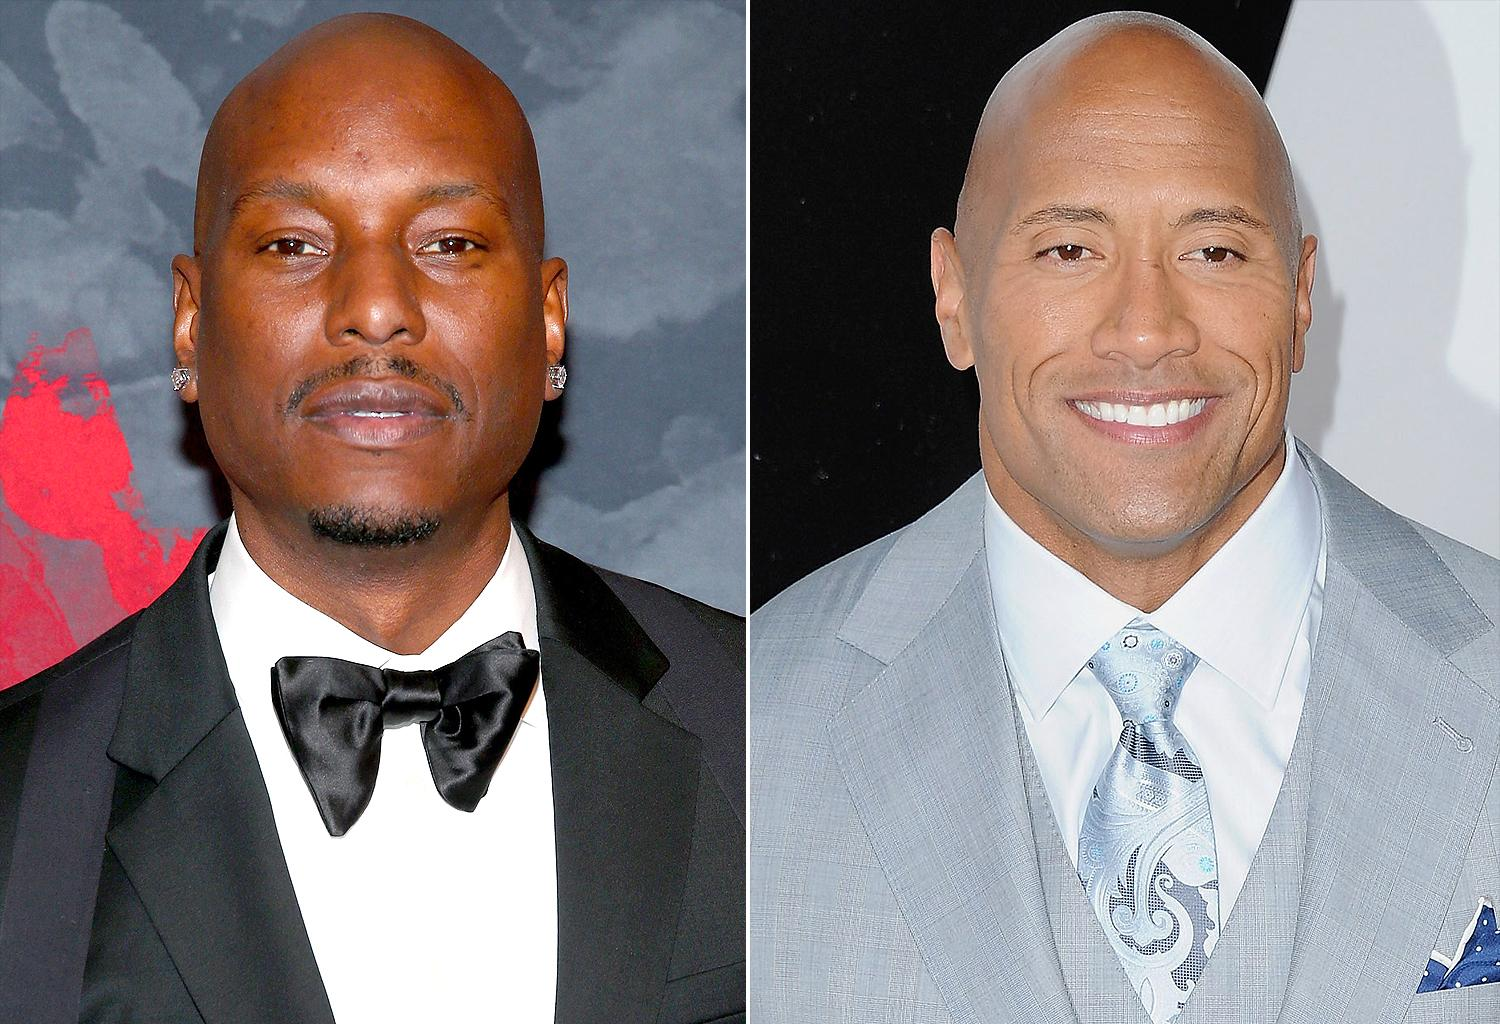 The Rock Responds To Tyrese's Hobbs And Shaw Shade In The Best Way